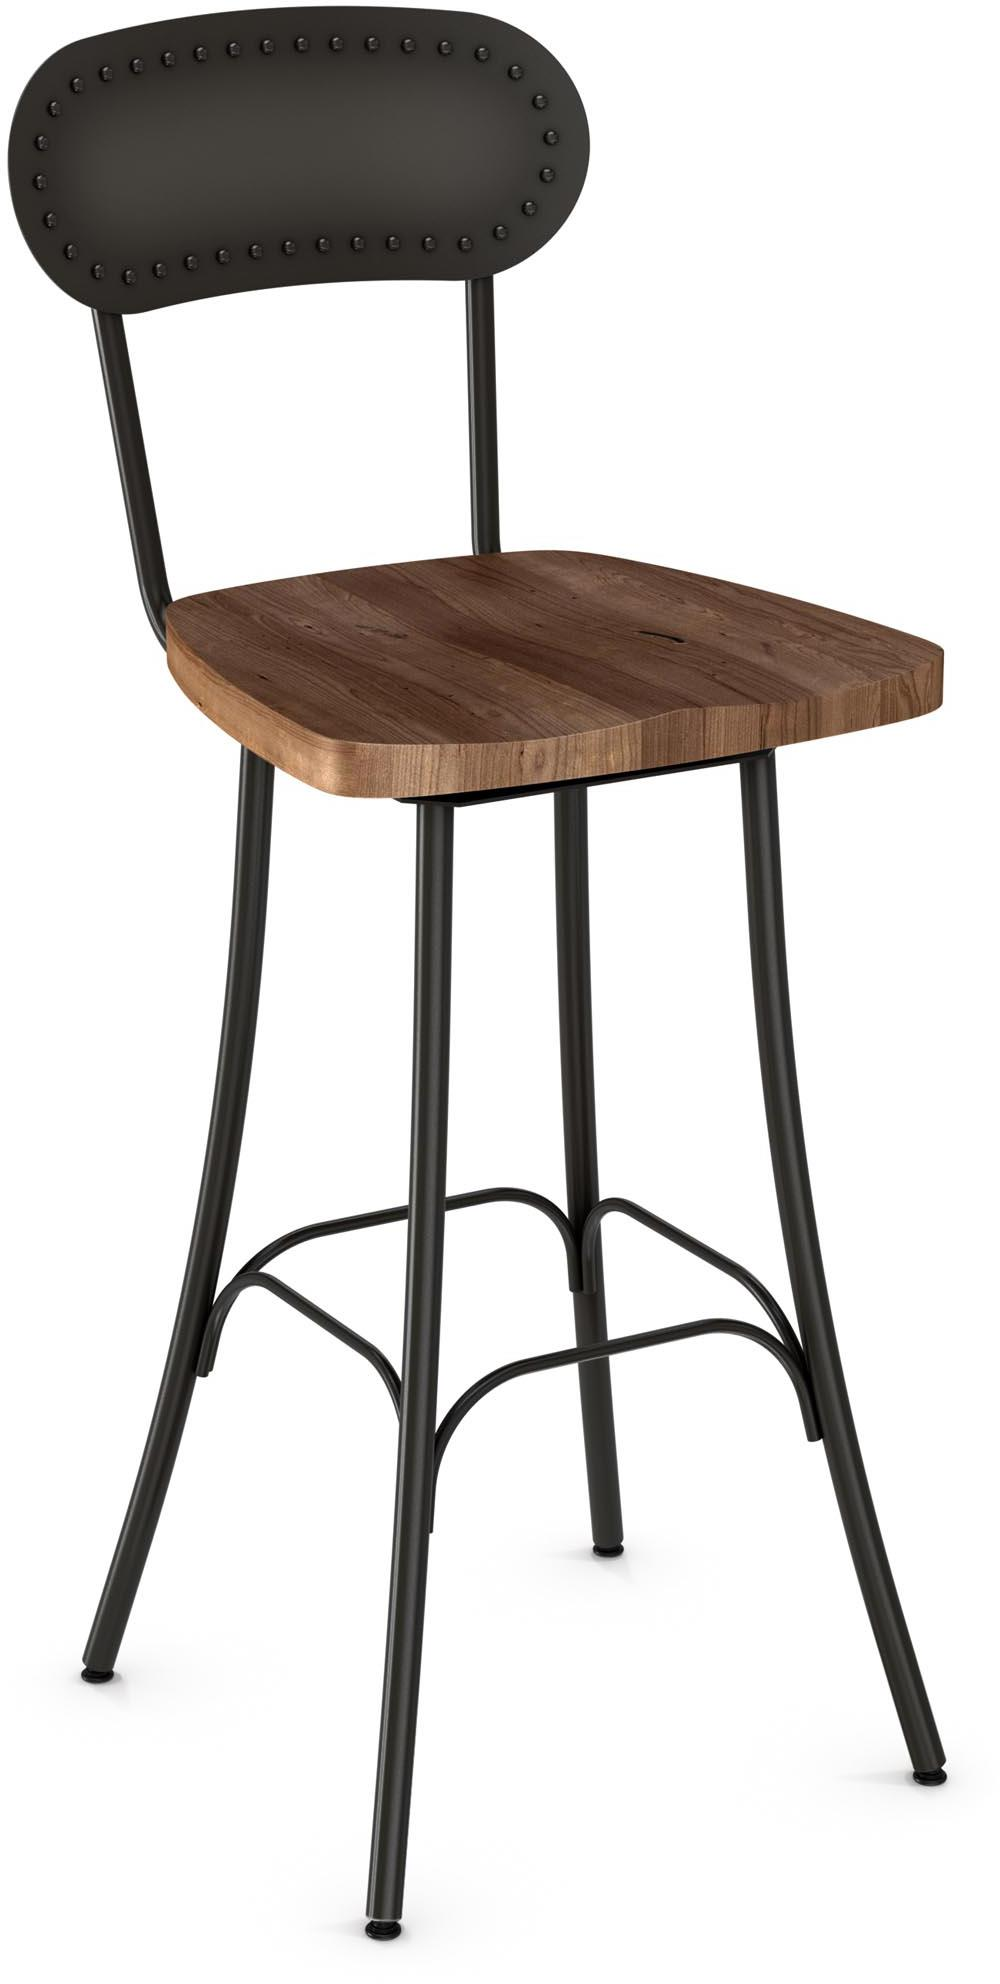 "Industrial 30"" Bean Bar Stool by Amisco at Saugerties Furniture Mart"